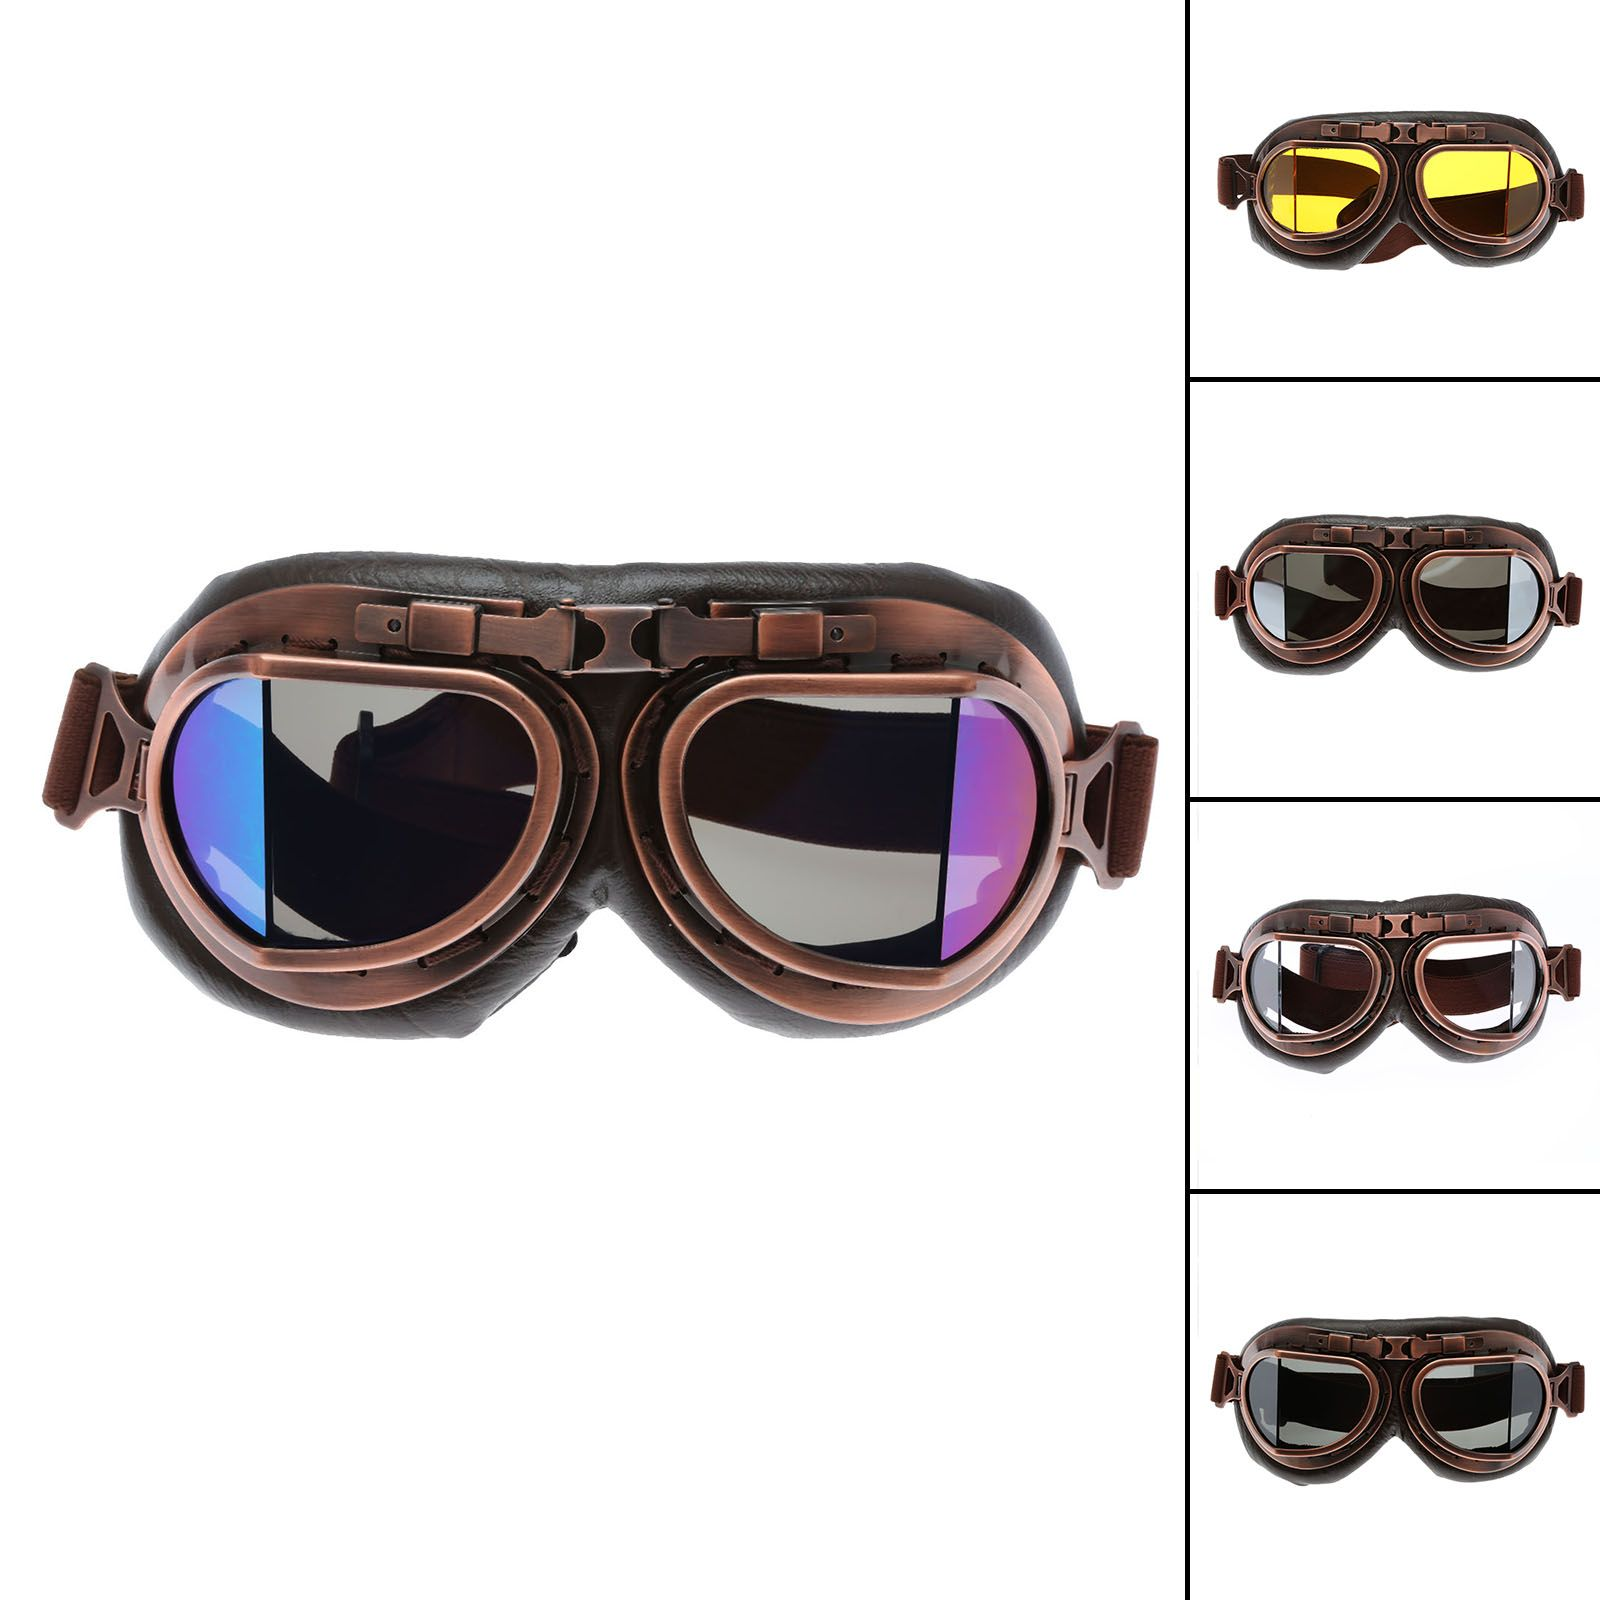 Motorcycle Goggles <font><b>Glasses</b></font> Vintage Motocross Classic Goggles Retro Aviator Pilot Cruiser Steampunk ATV Bike UV Protection Copper